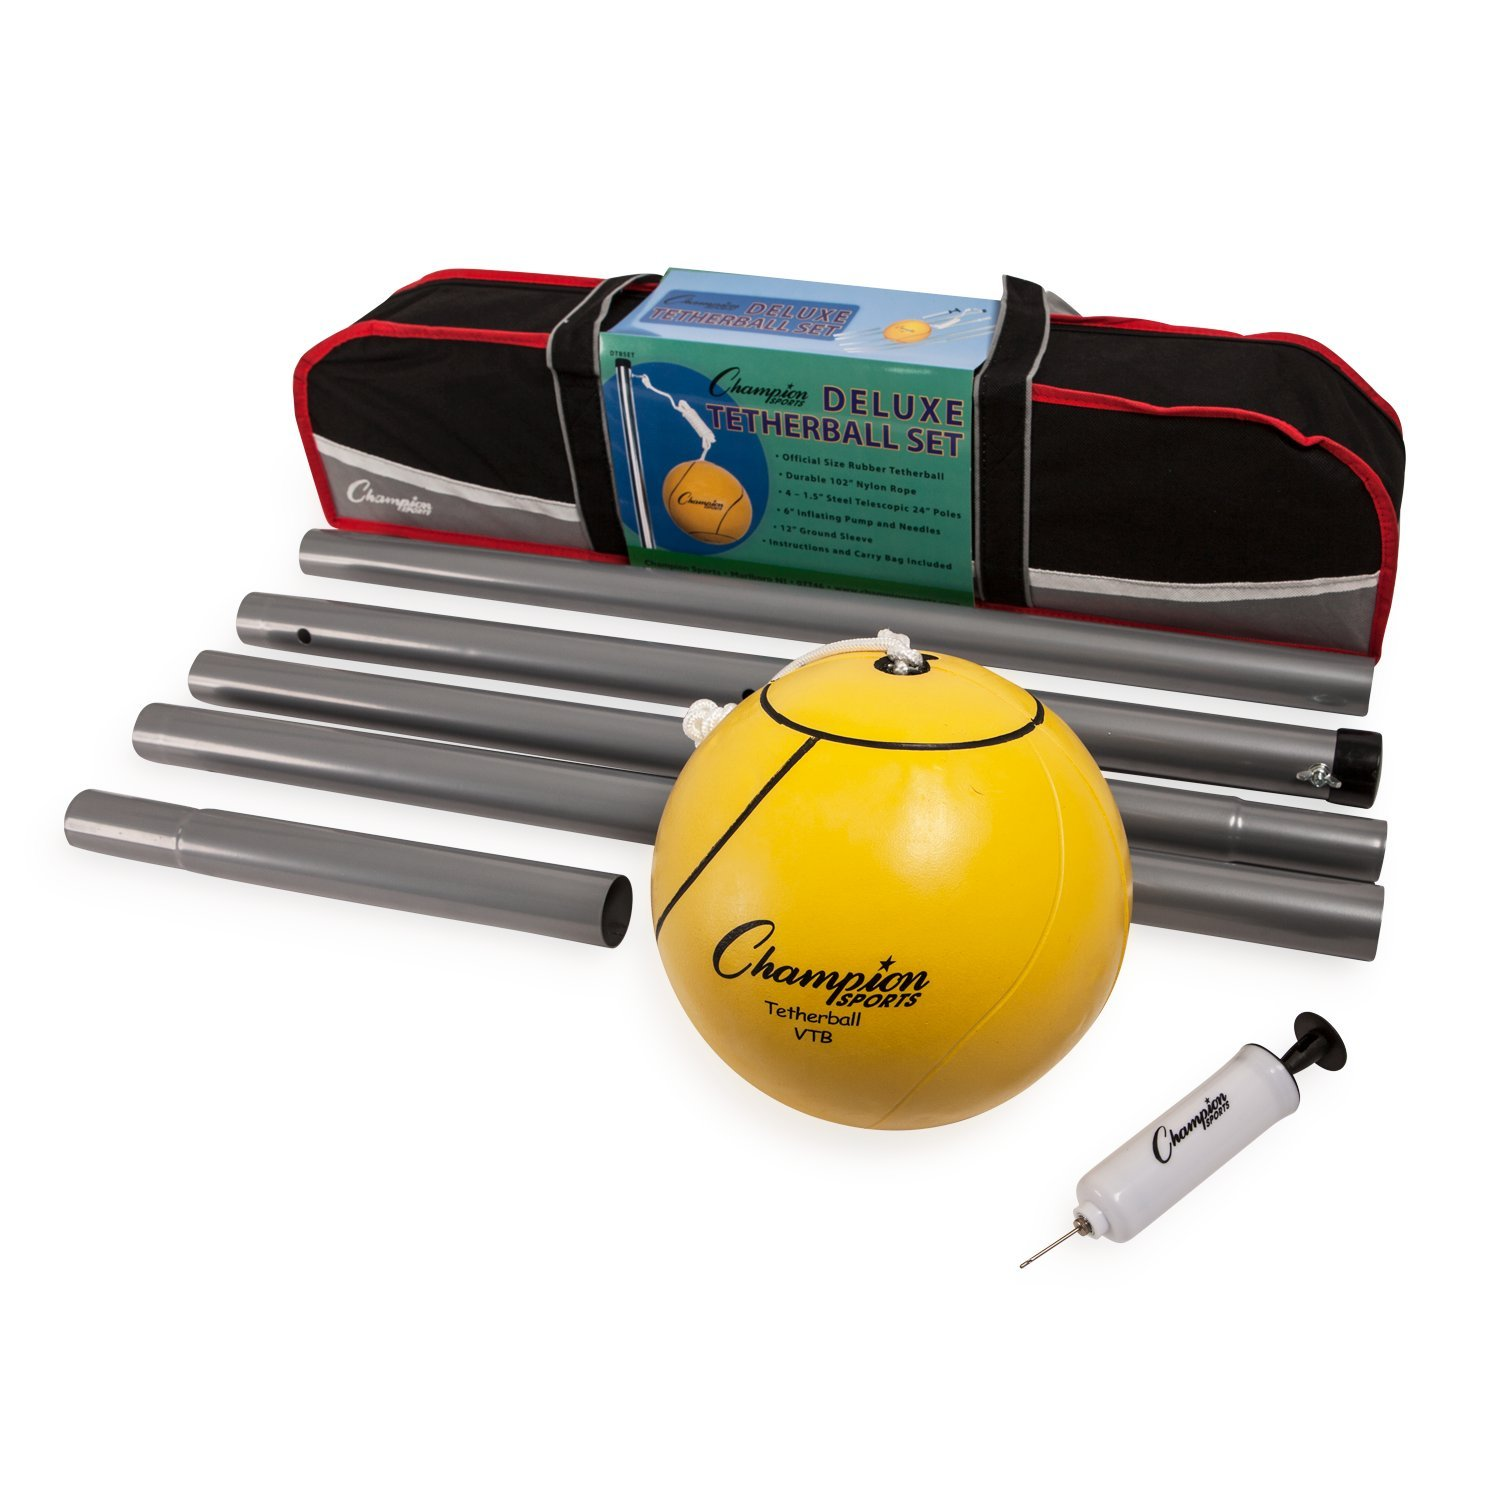 Champion Sports Portable Tetherball Set: Classic Backyard Lawn Beach and Pool Party Game Includes Soft Ball Nylon Rope & Durable Telescopic Pole With Free Air Pump DTBSET